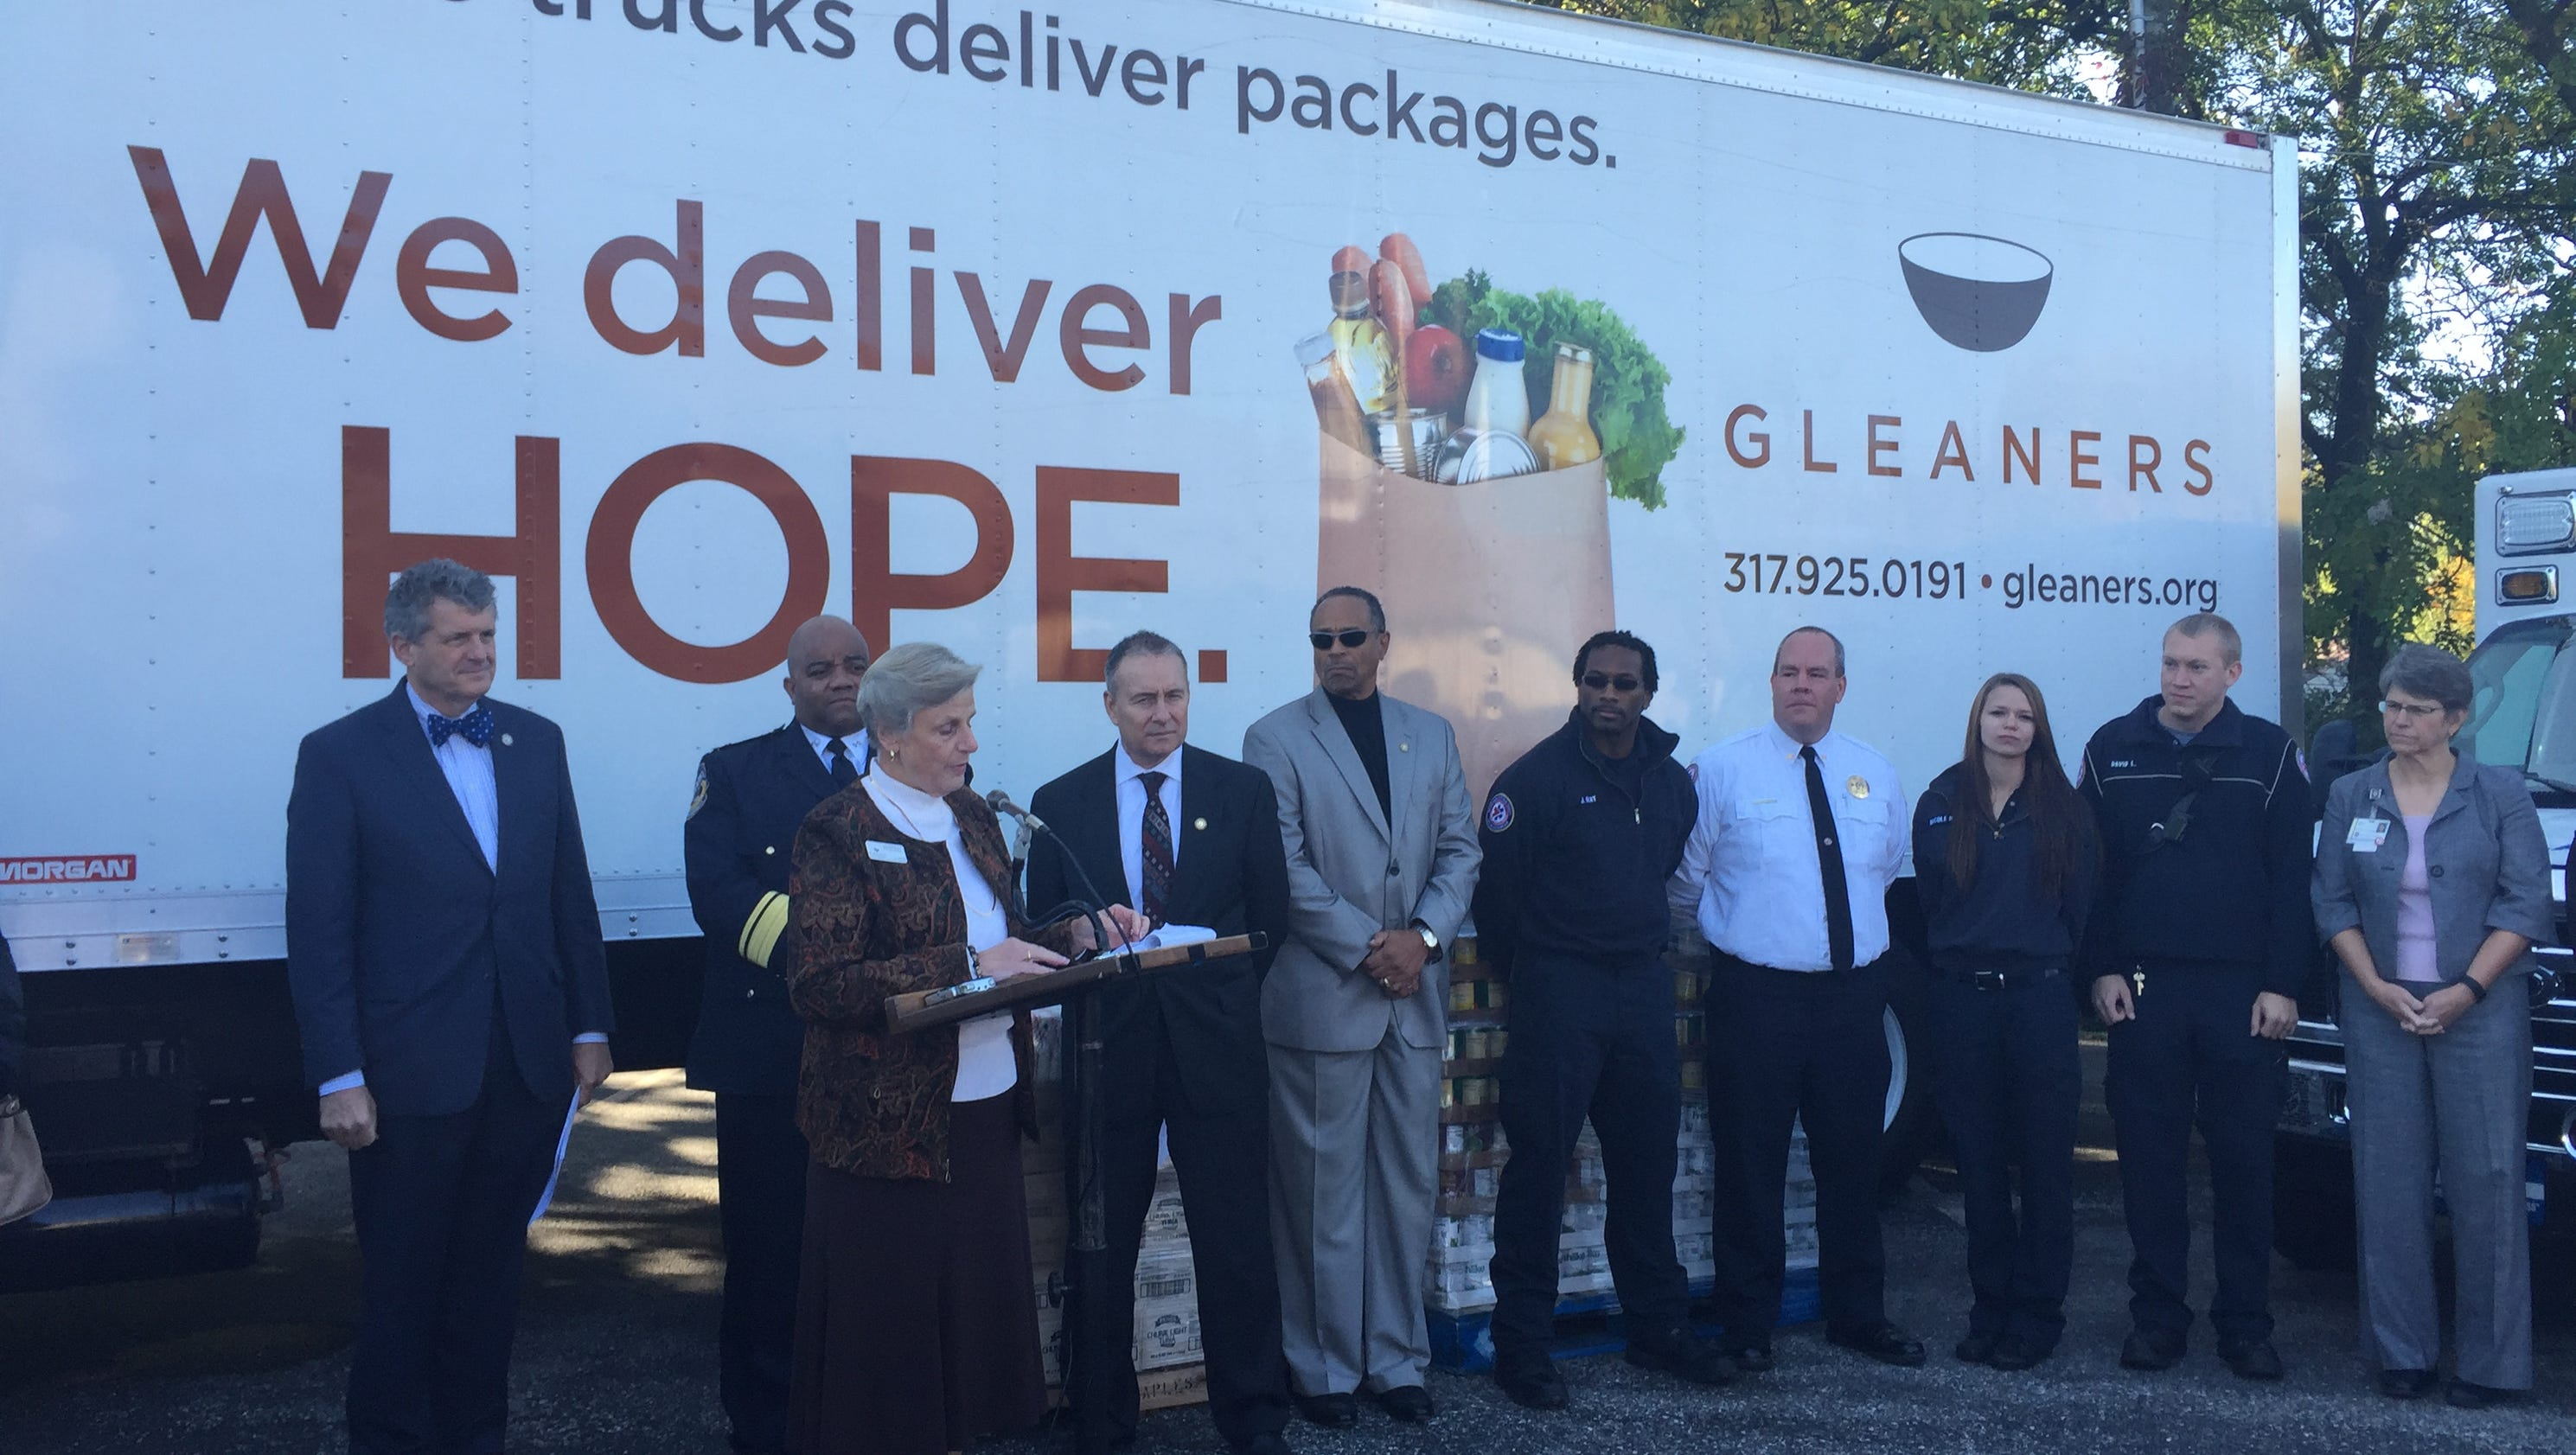 food pantries back in indy 4 things to know